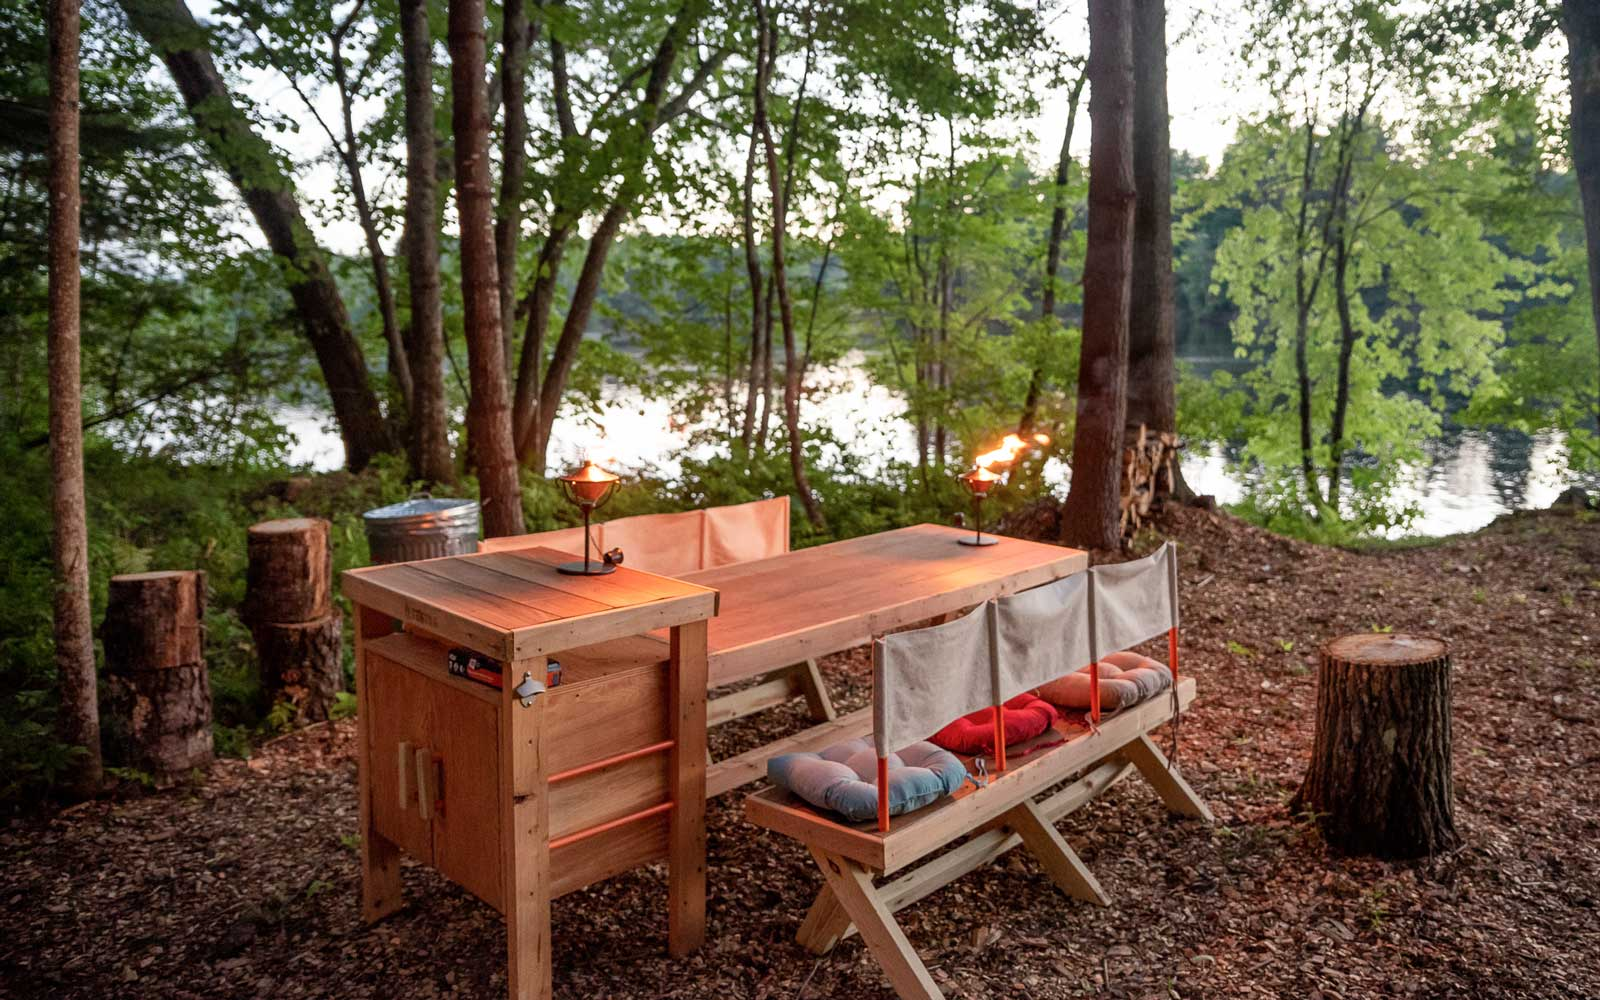 Glamping experiences with Tentrr